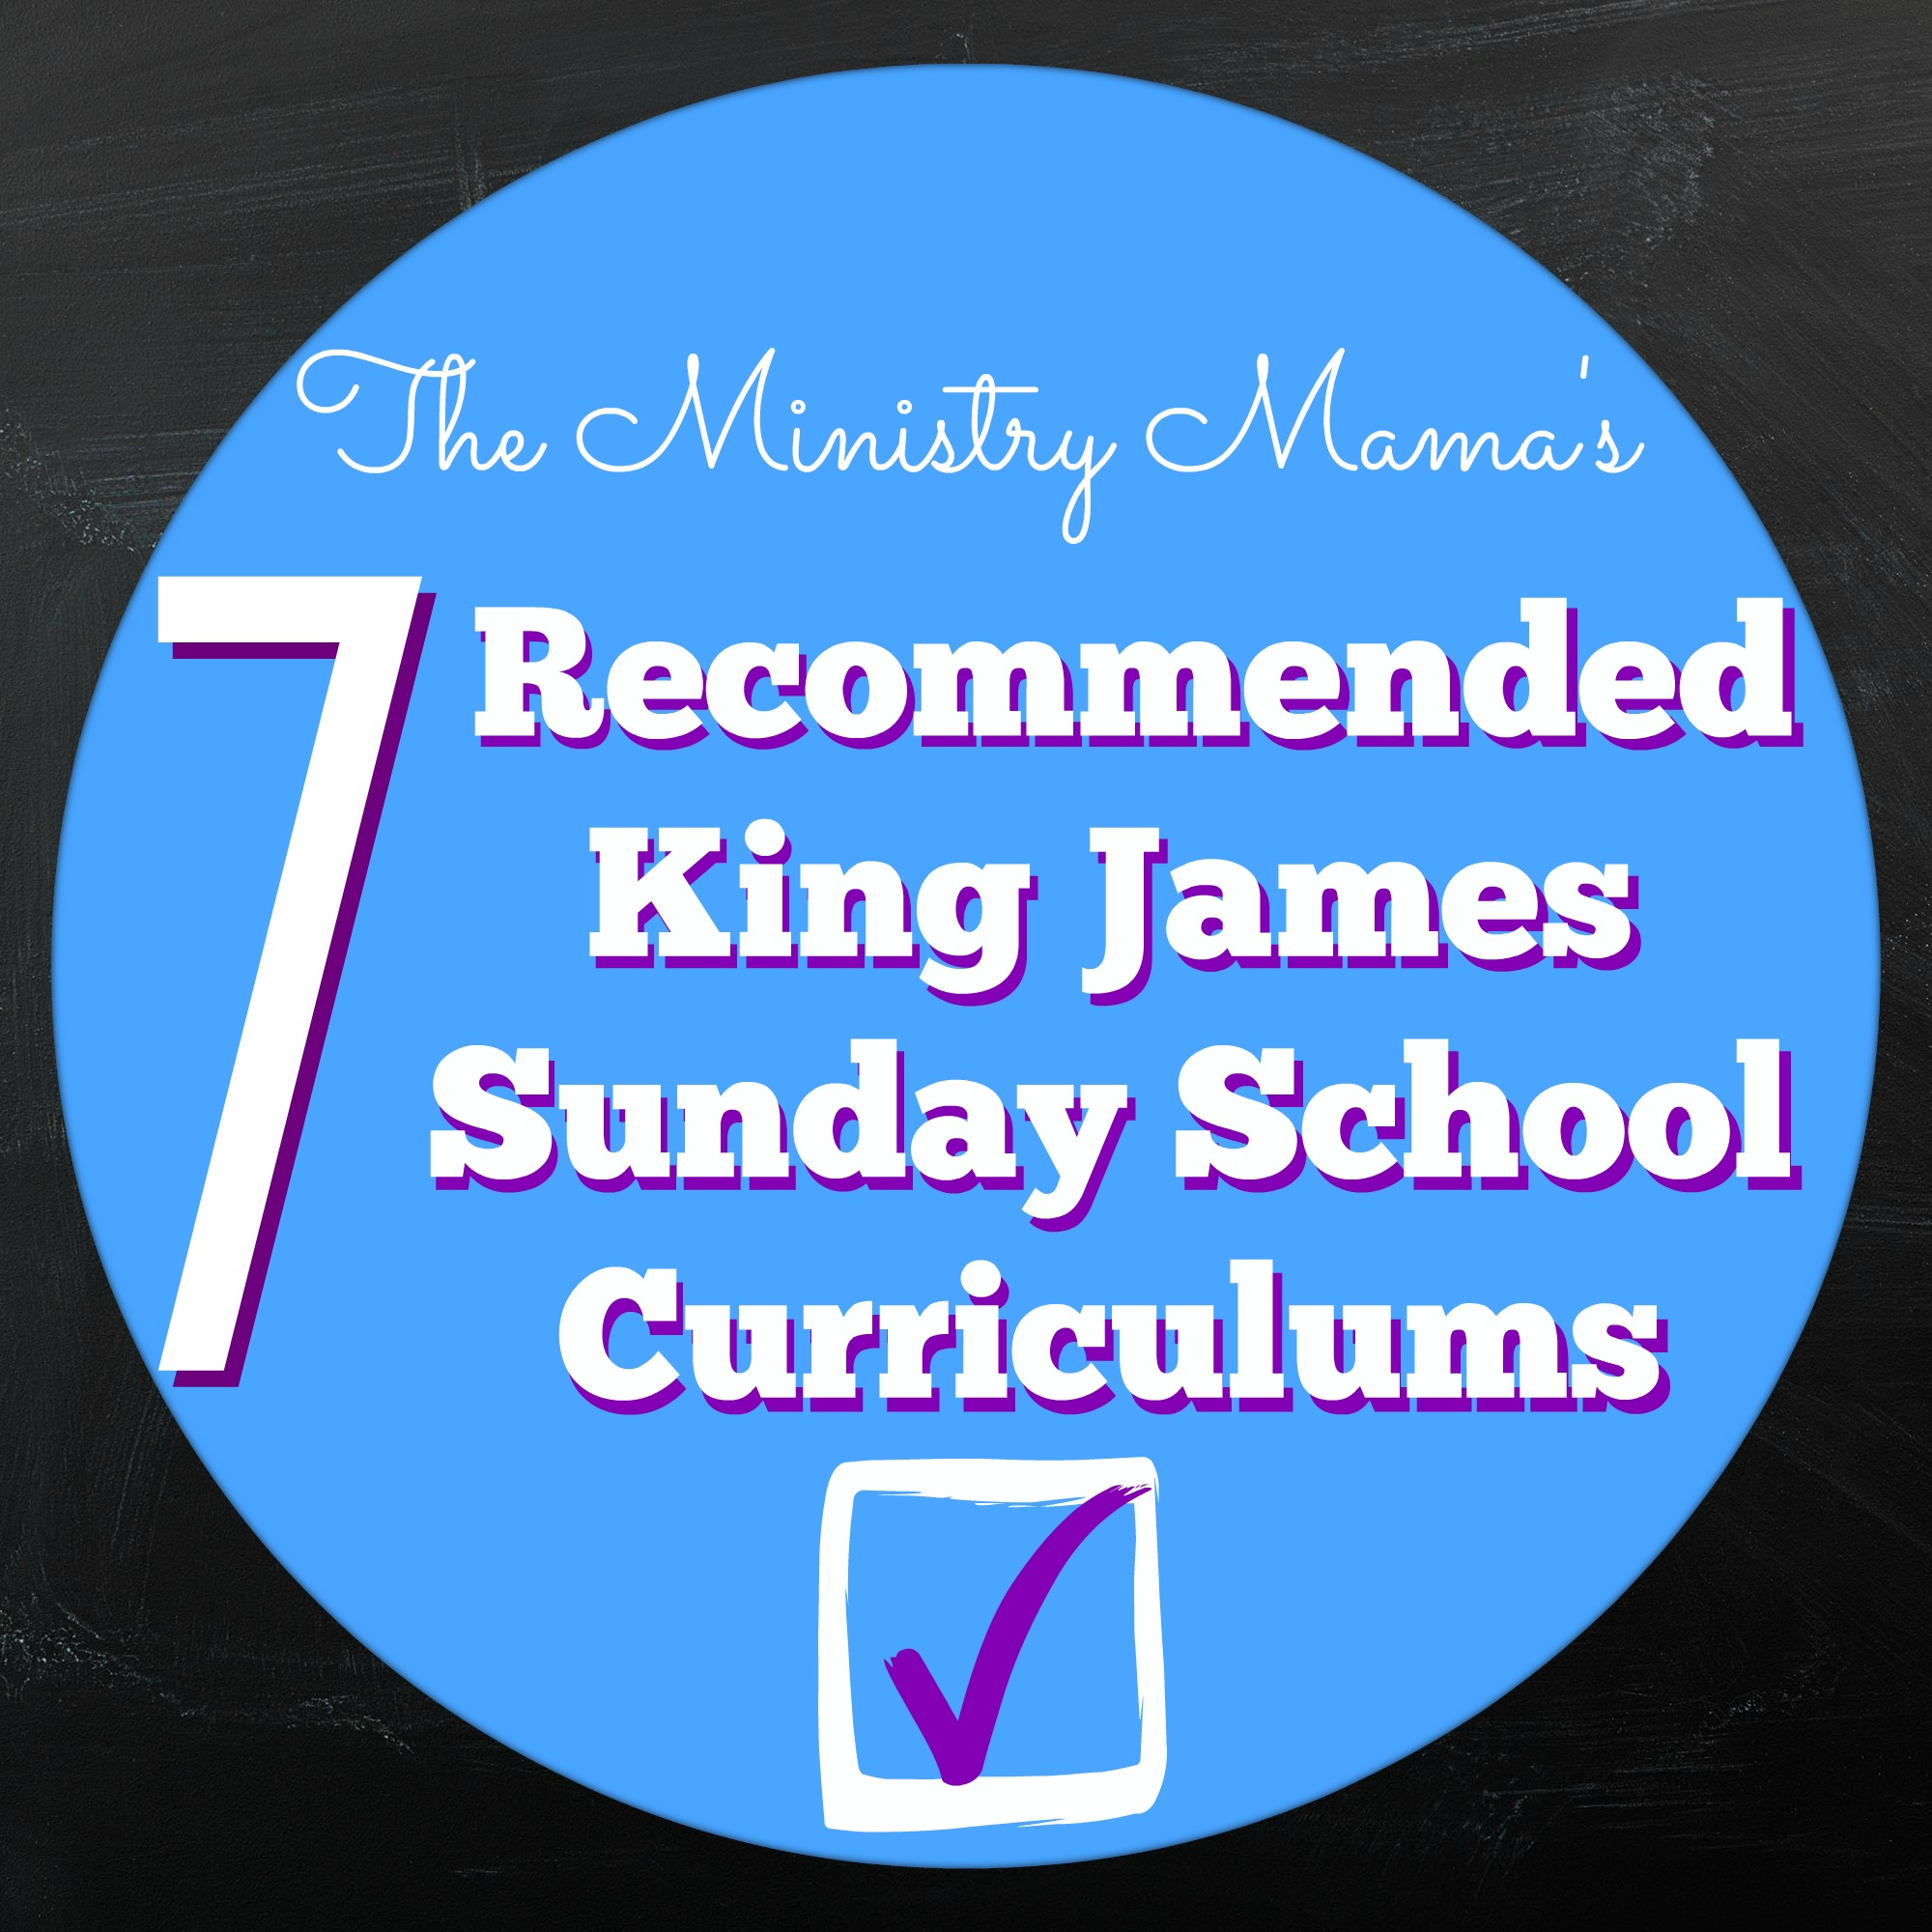 7 Recommended King James Sunday School Curriculums – The